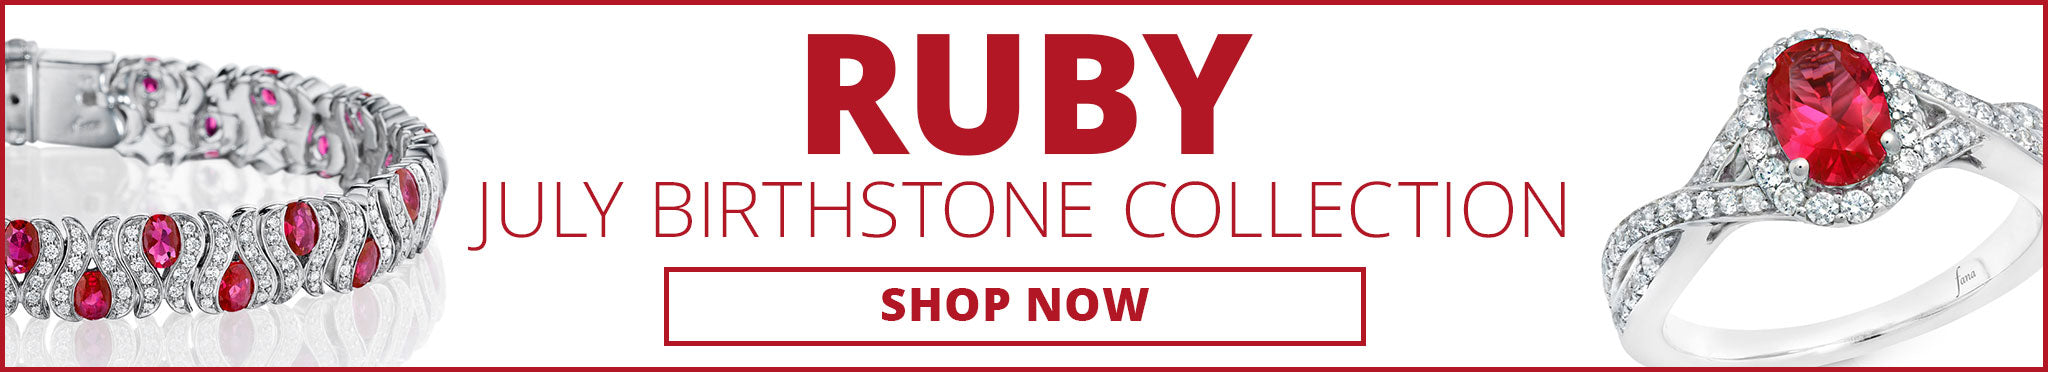 Shop July Birthstone Collection